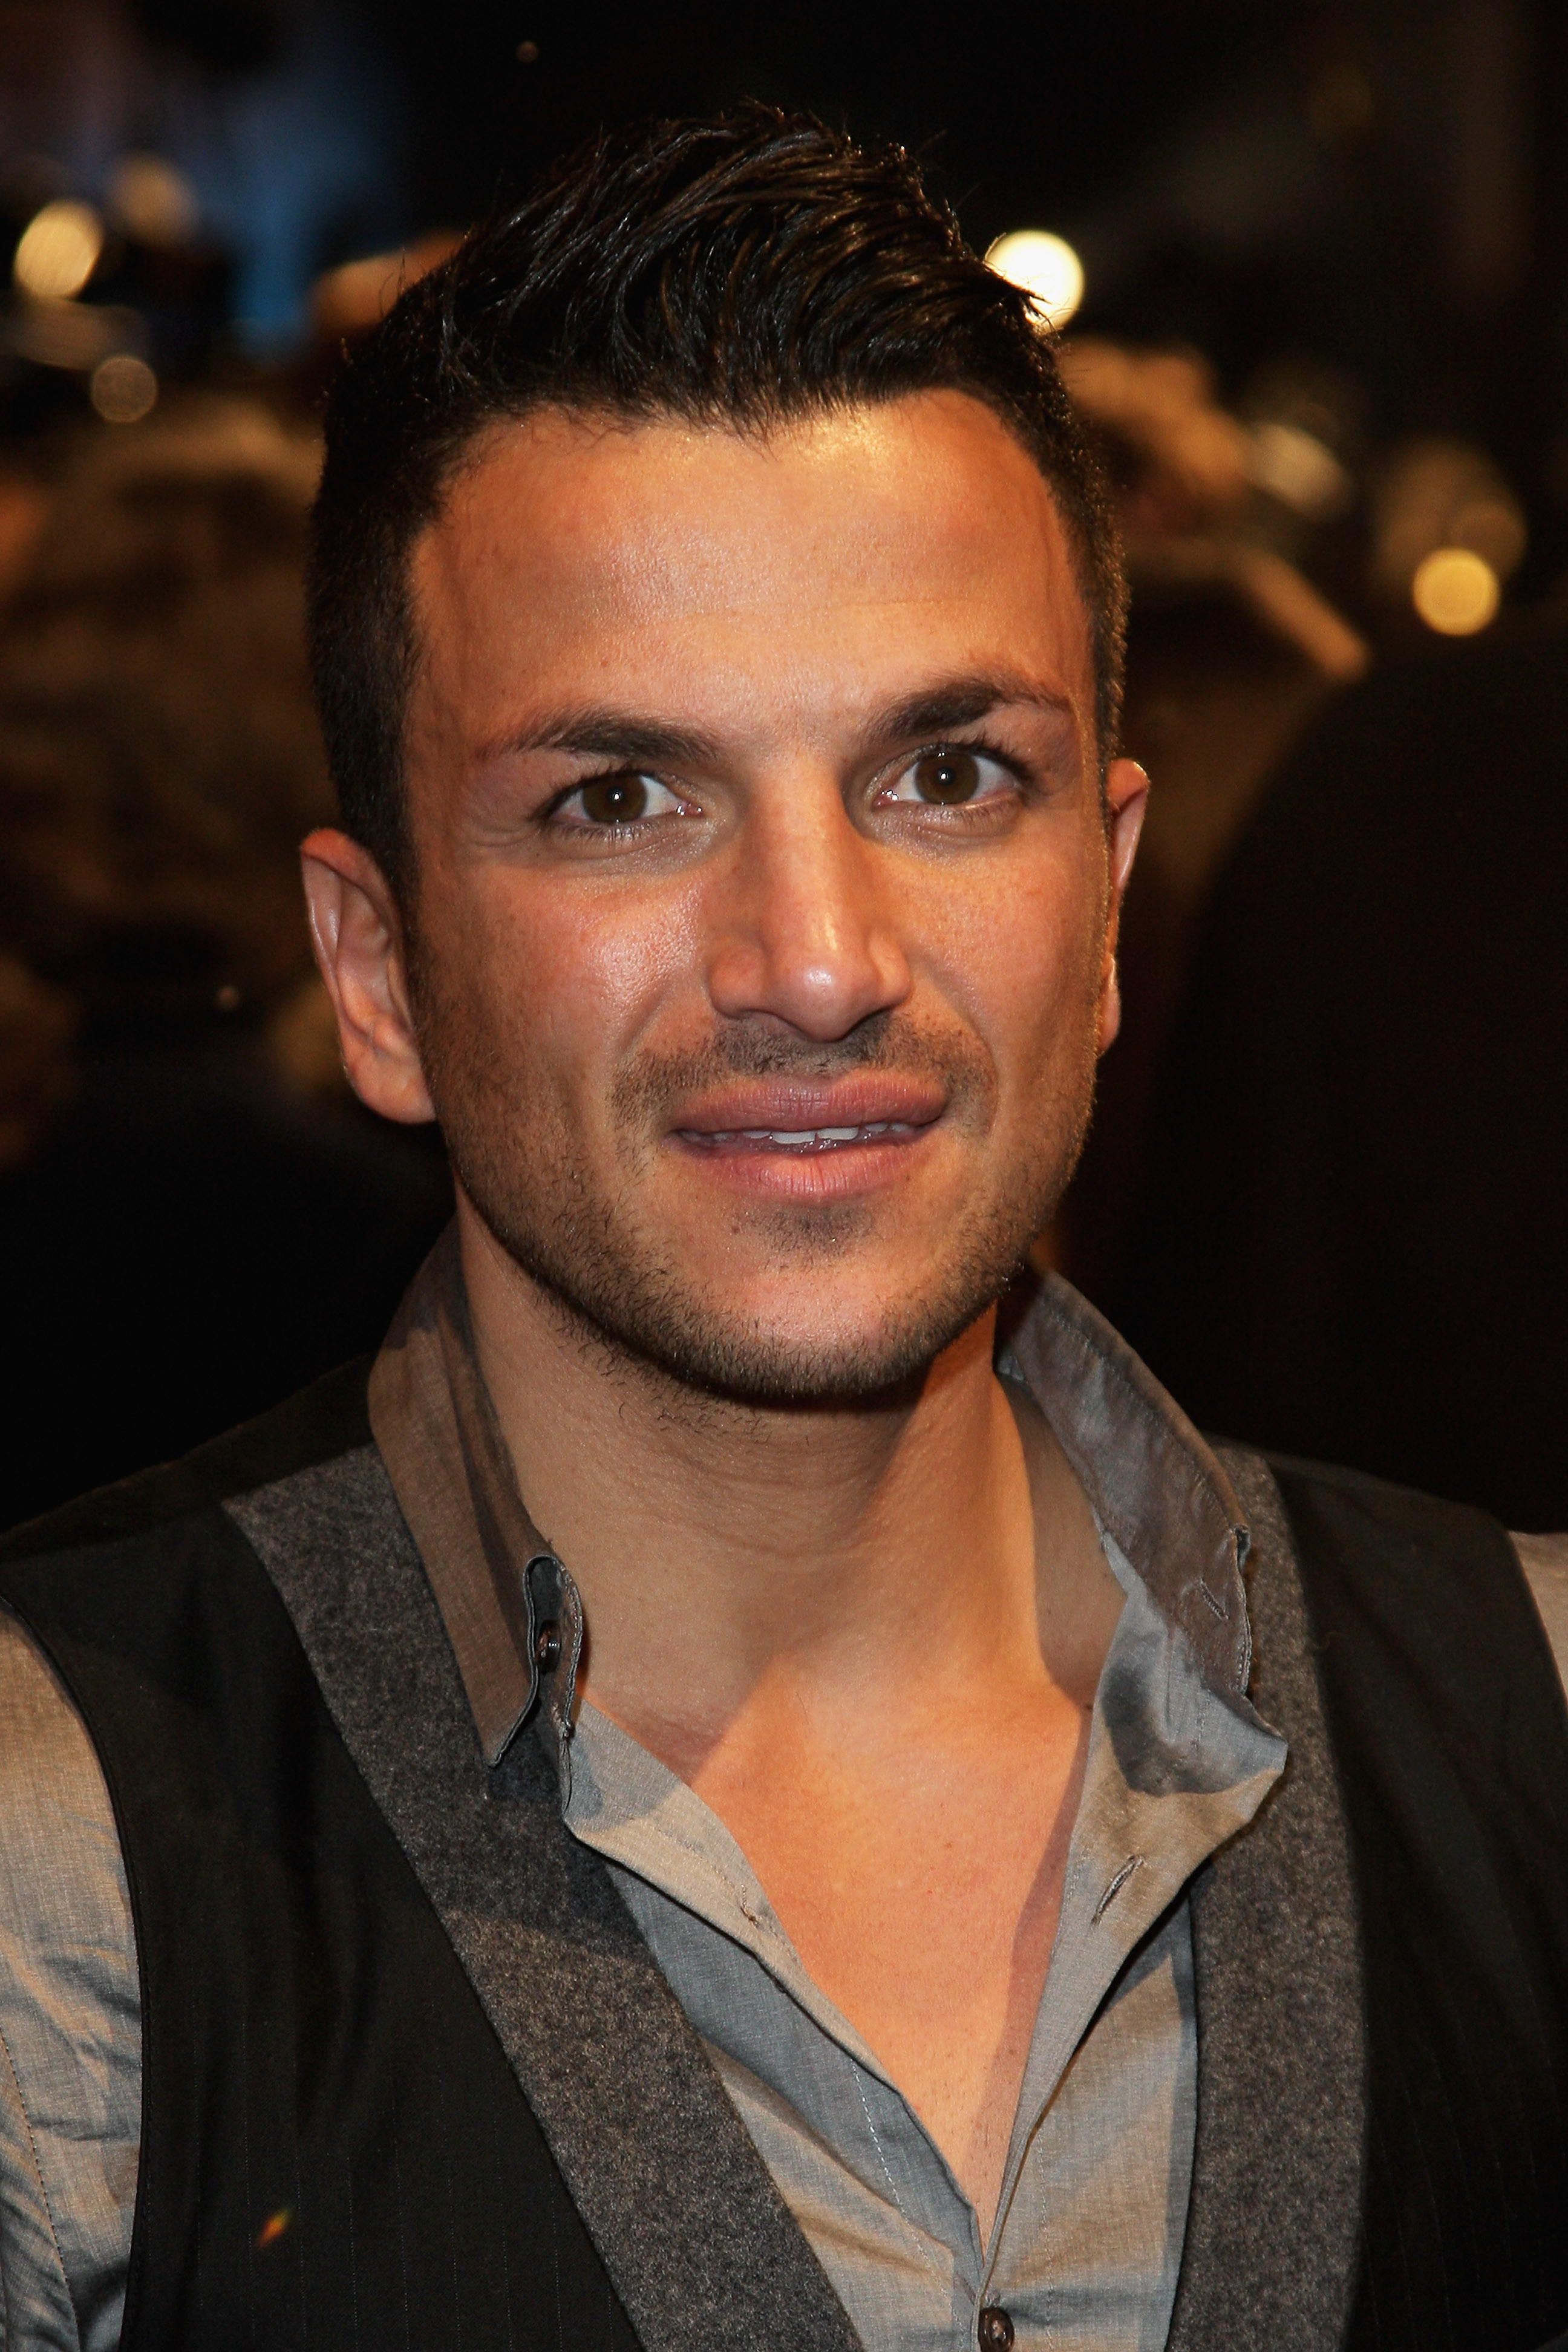 Peter Andre photo gallery - 14 best Peter Andre pics ...